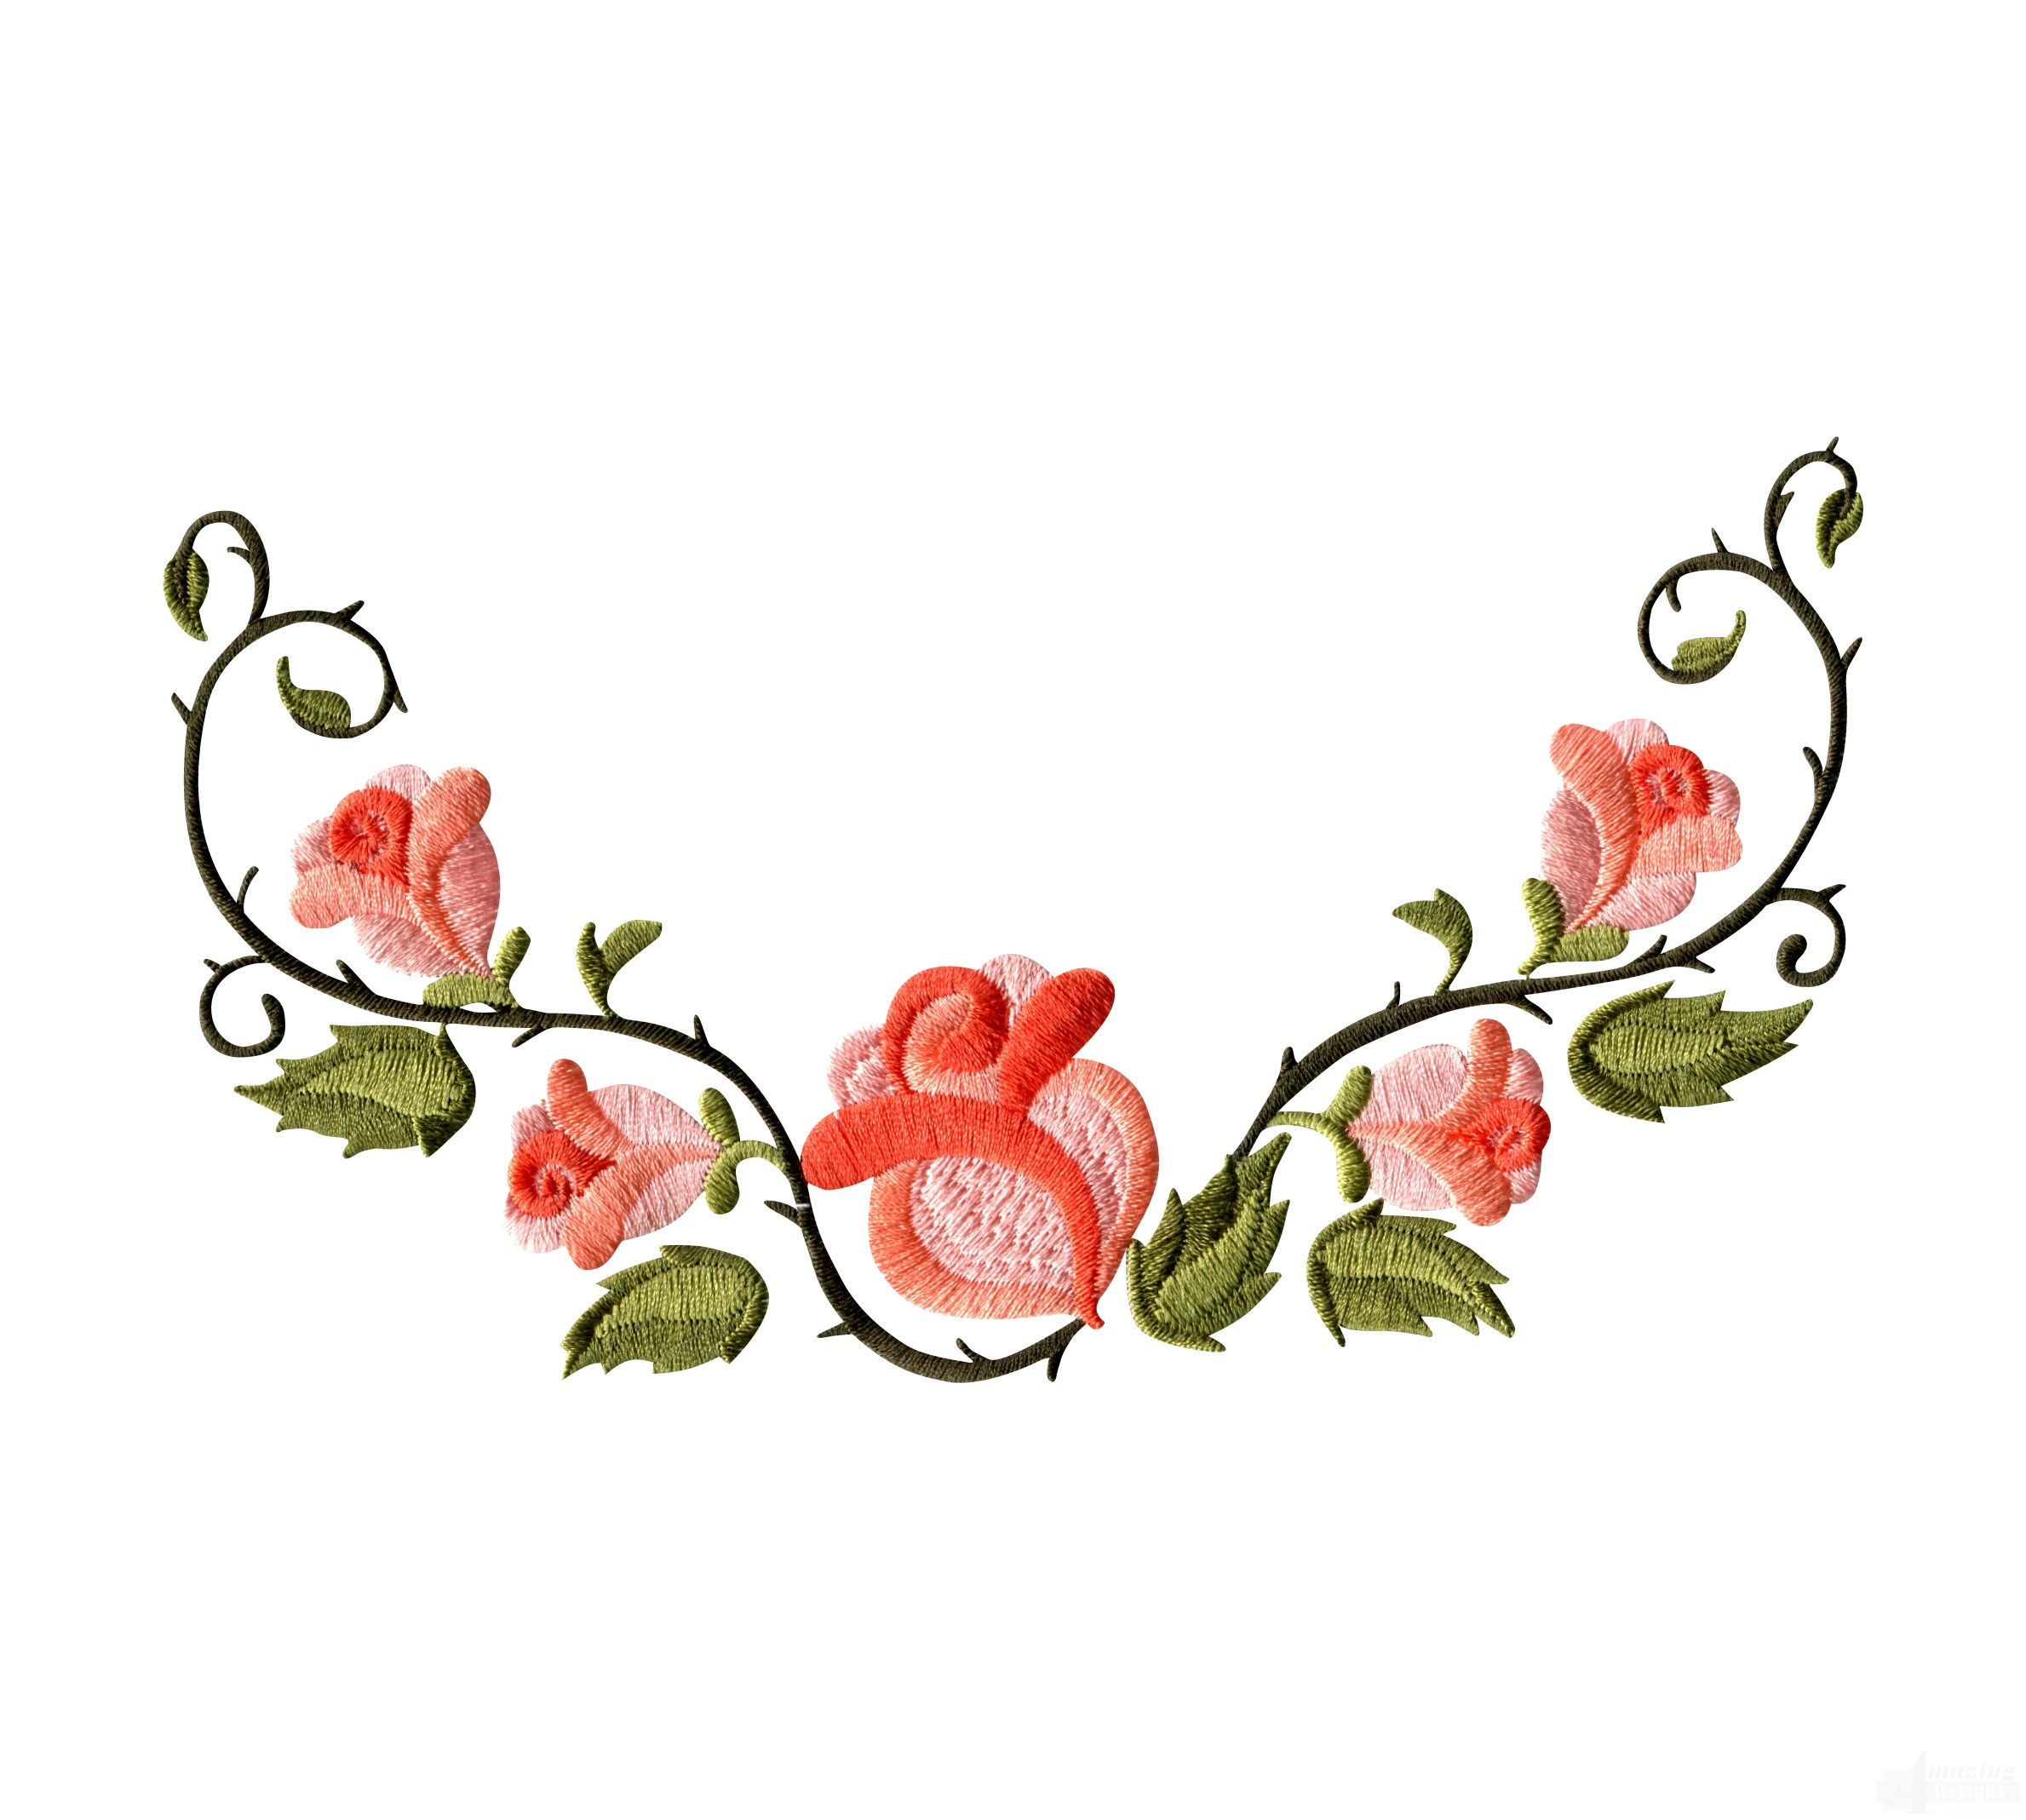 Clipart of Floral Border Embroidery Designs free image.